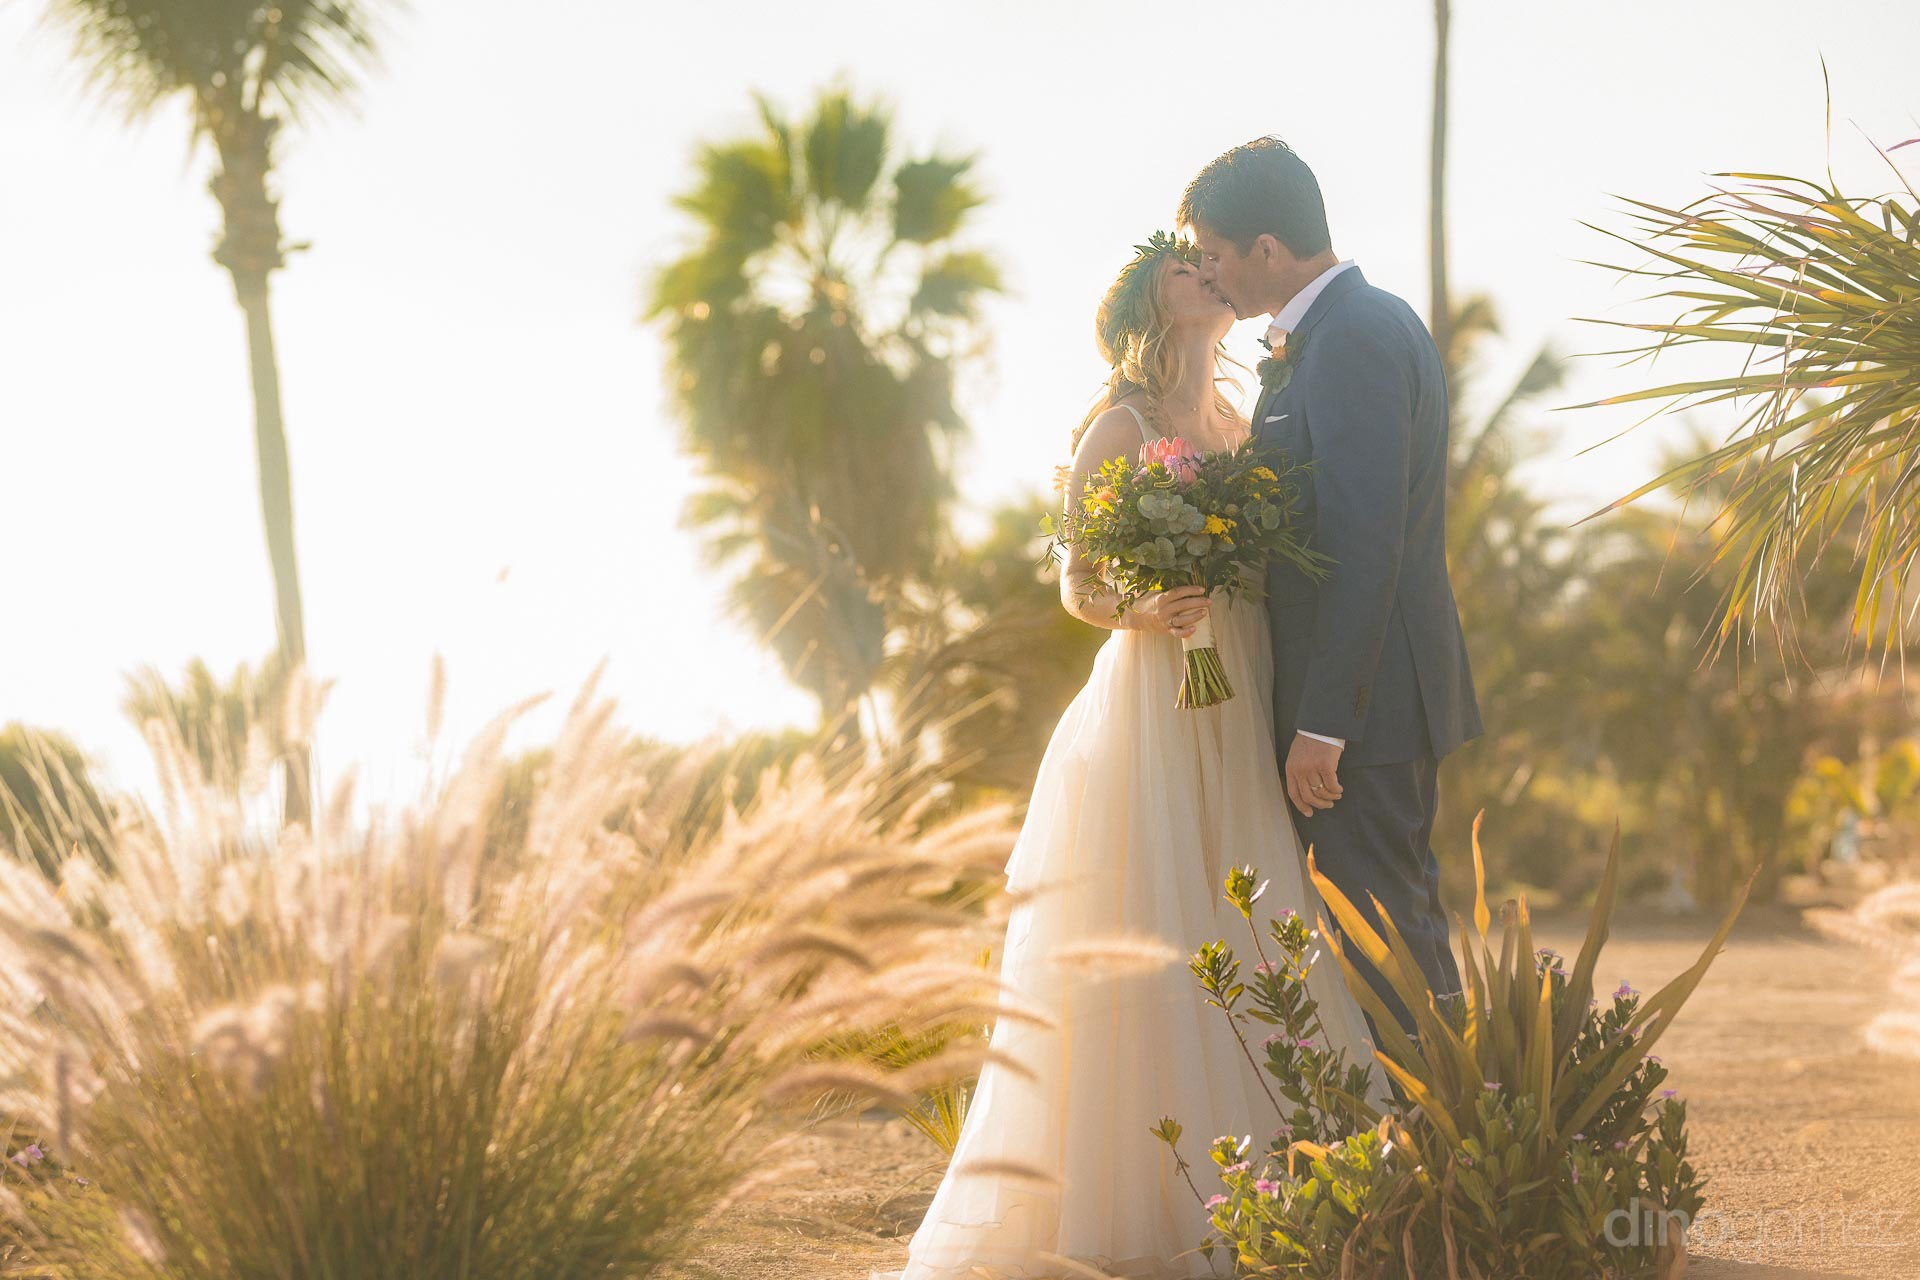 Main cover photograph of Rachel & Destin's wedding preview page